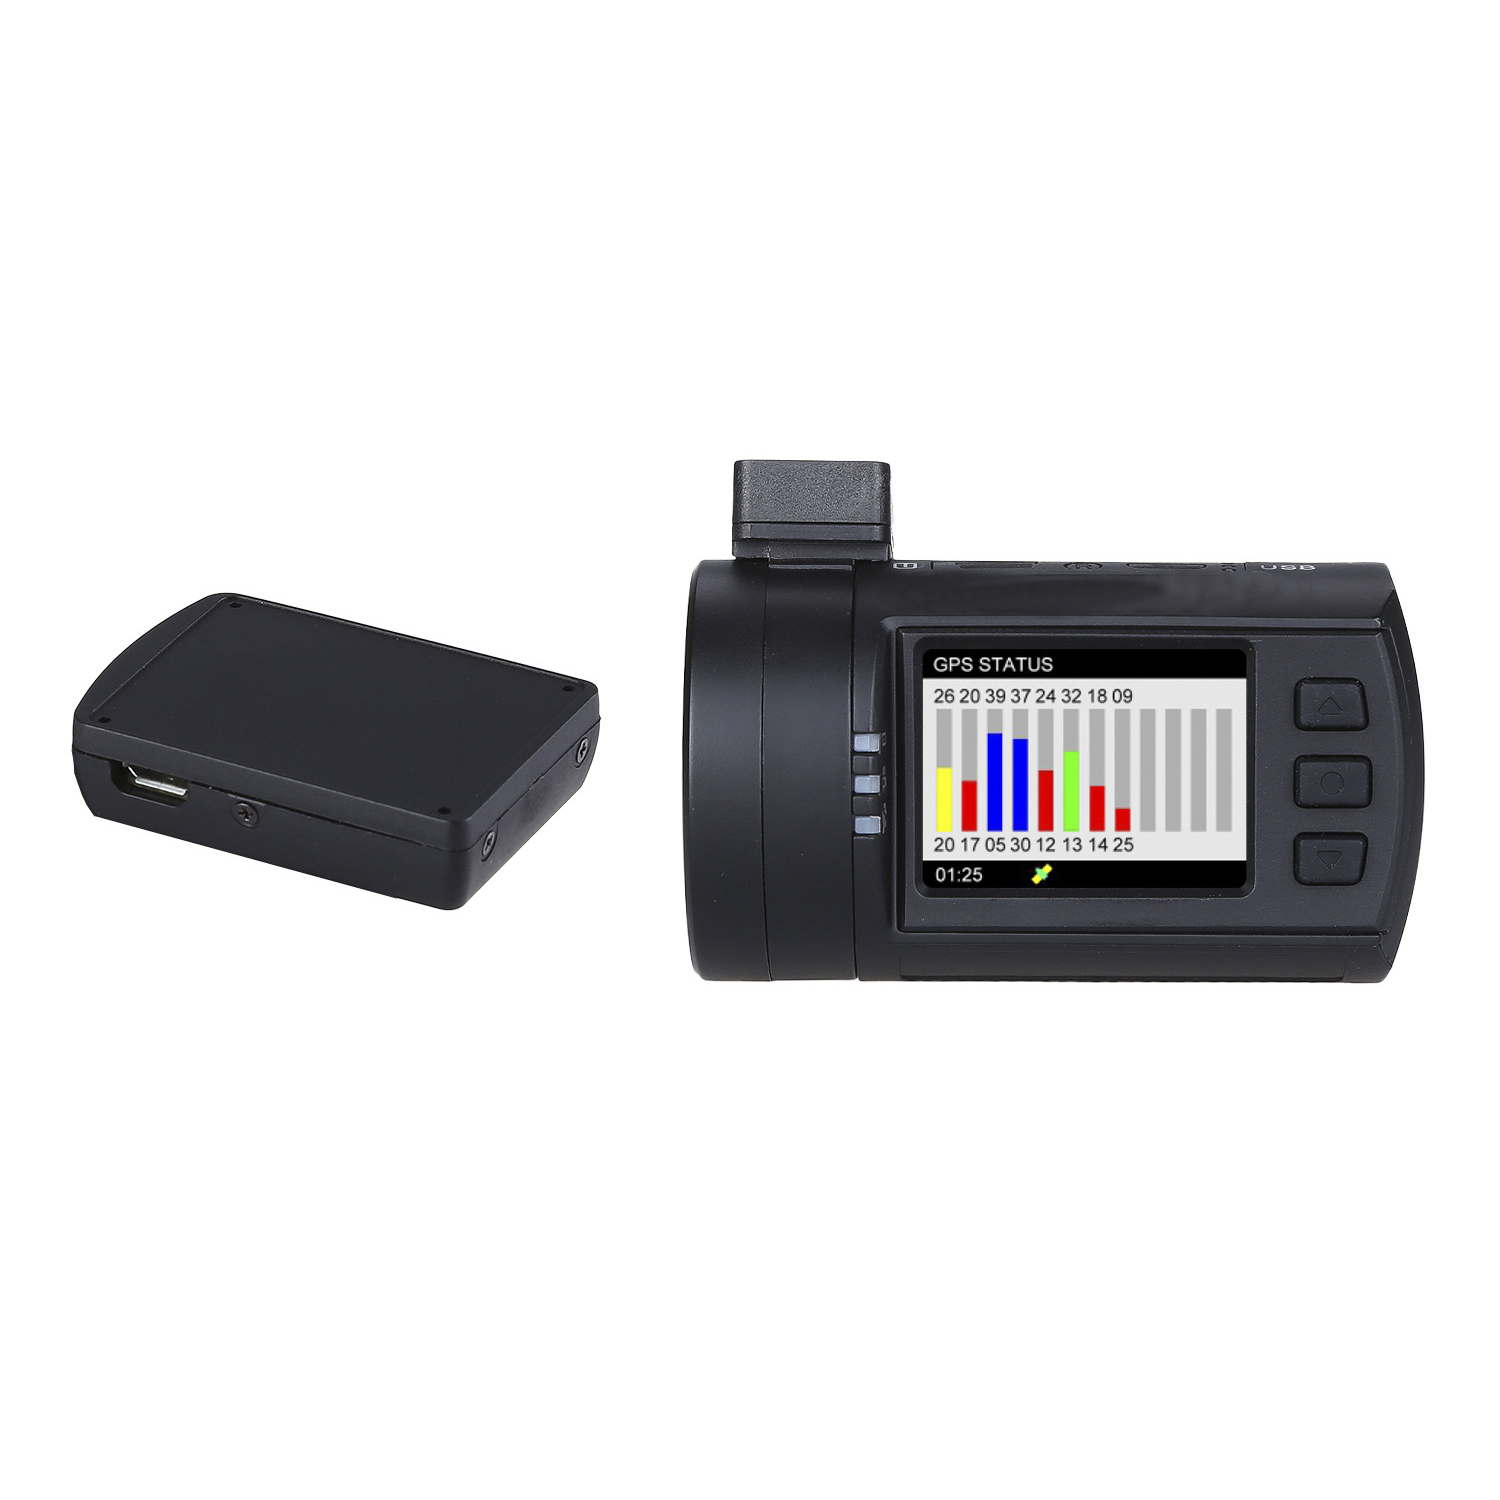 Mini 0906 1080P Dual Lens Car Dash Cam Super Capacitor Car Dvr Recorder Gps Cpl Hardwire Option As Well As Mini 0806Mini 0906 1080P Dual Lens Car Dash Cam Super Capacitor Car Dvr Recorder Gps Cpl Hardwire Option As Well As Mini 0806